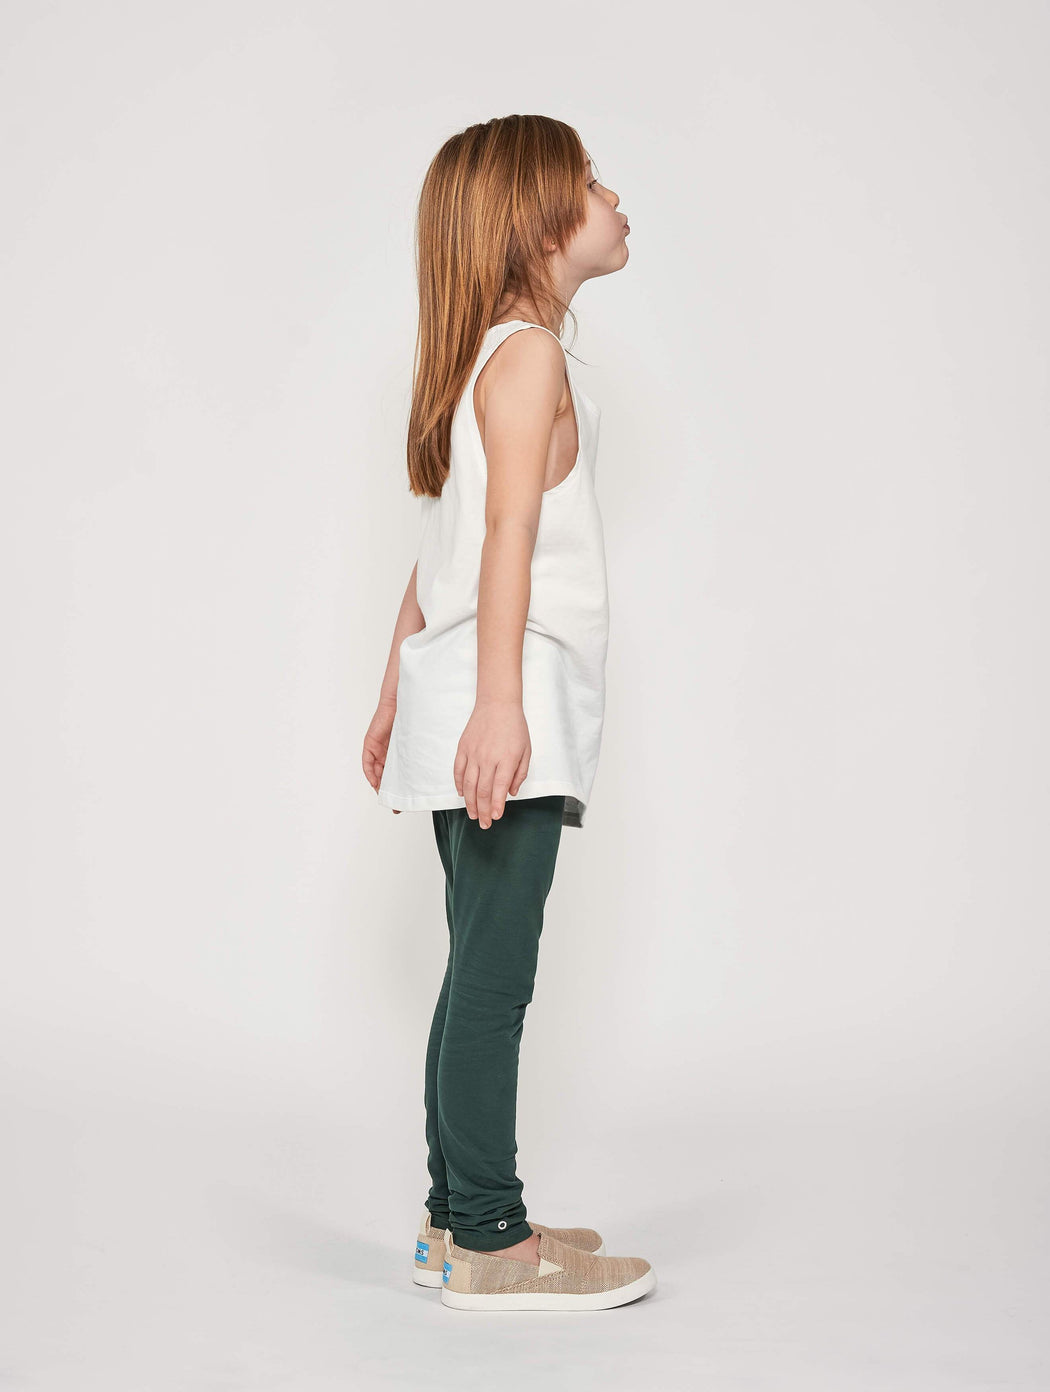 Play-All-Day Leggings - Forest Green | Trousers & Shots | ORBASICS | [product_tag] - Fair Bazaar Ethical Living